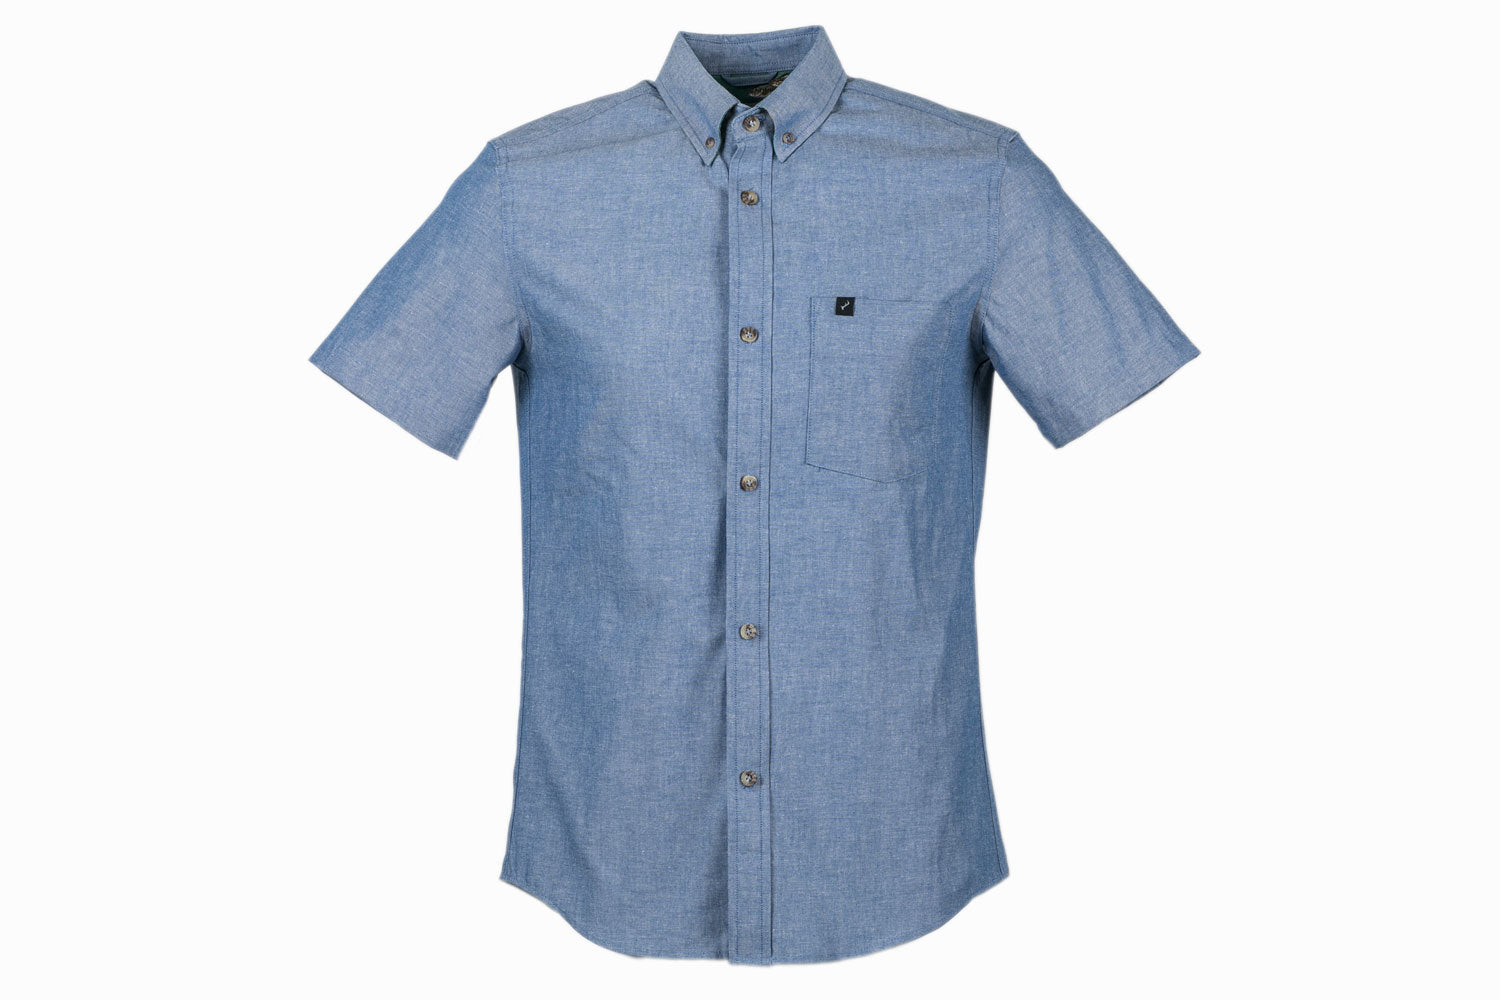 Men's S/S- Moonshine Blue Chambray